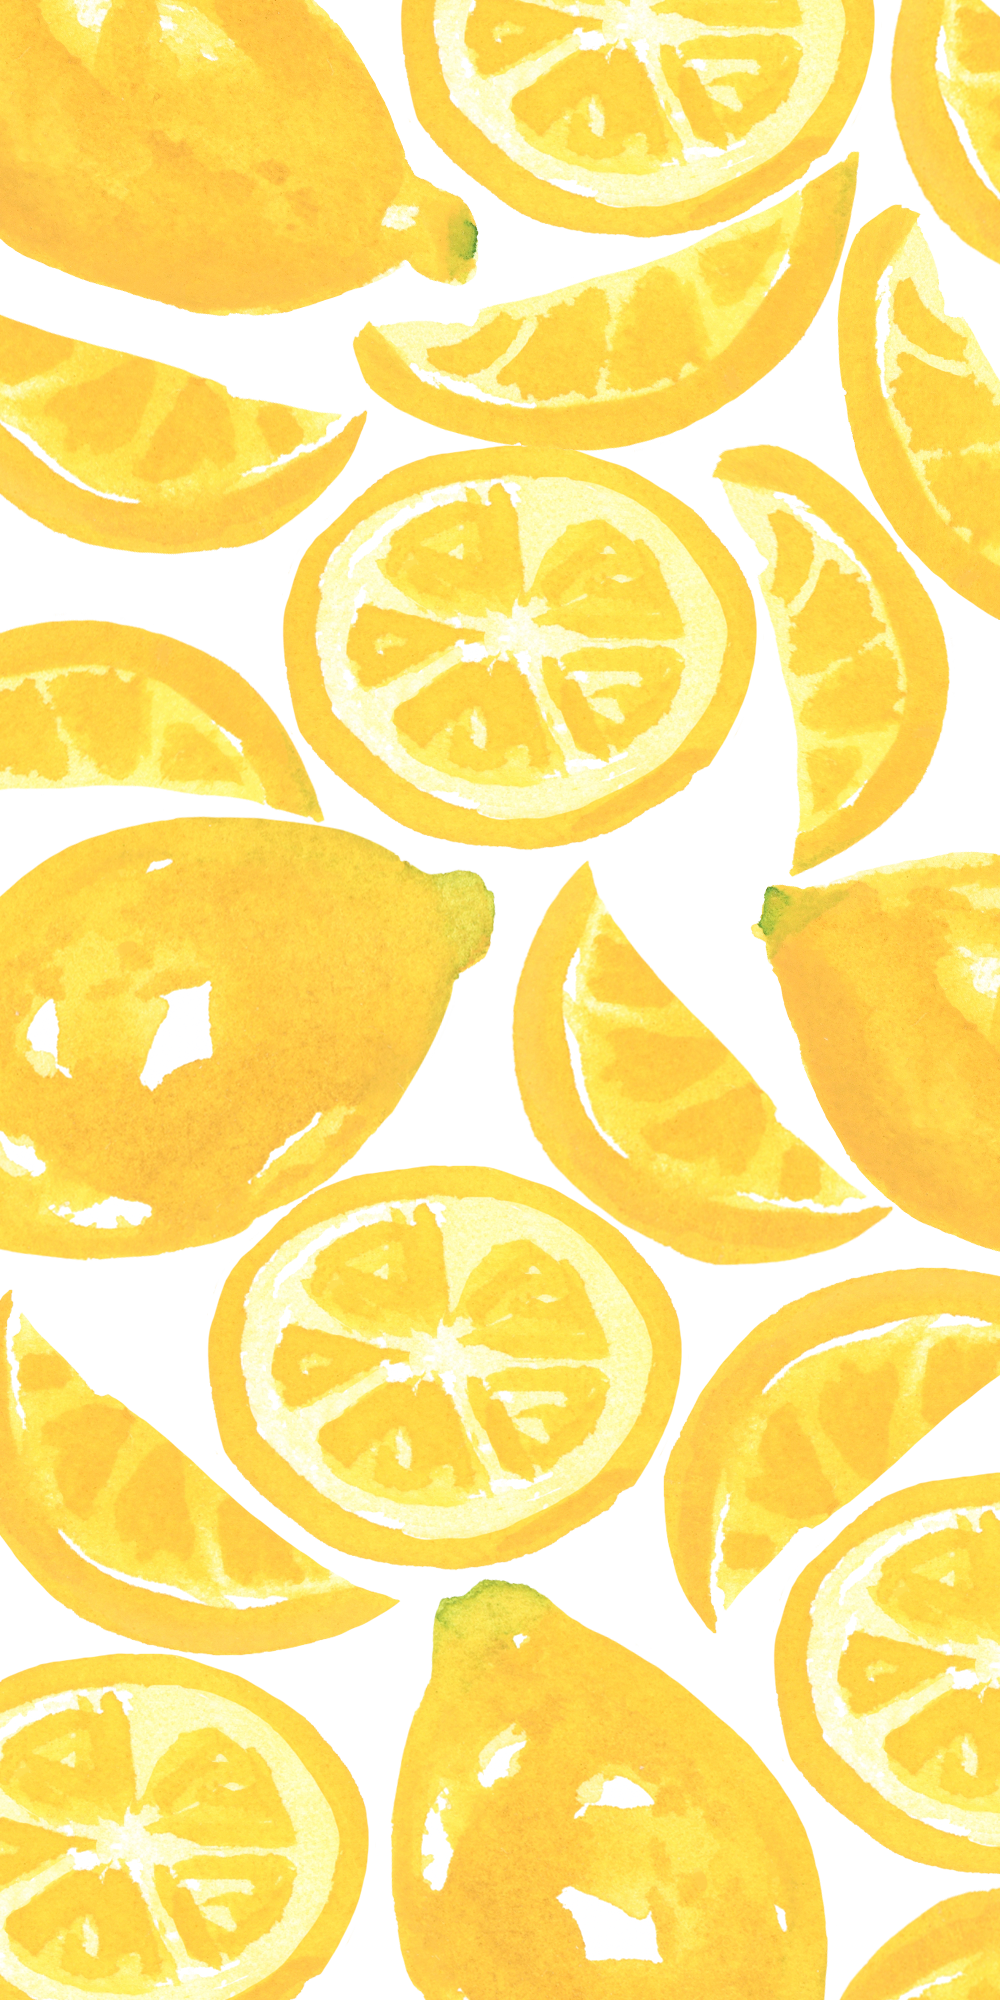 Lemons Fruit Casetify Iphone Art Design Drawing Yellow In 2020 Iphone Wallpaper Yellow Artsy Background Yellow Wallpaper